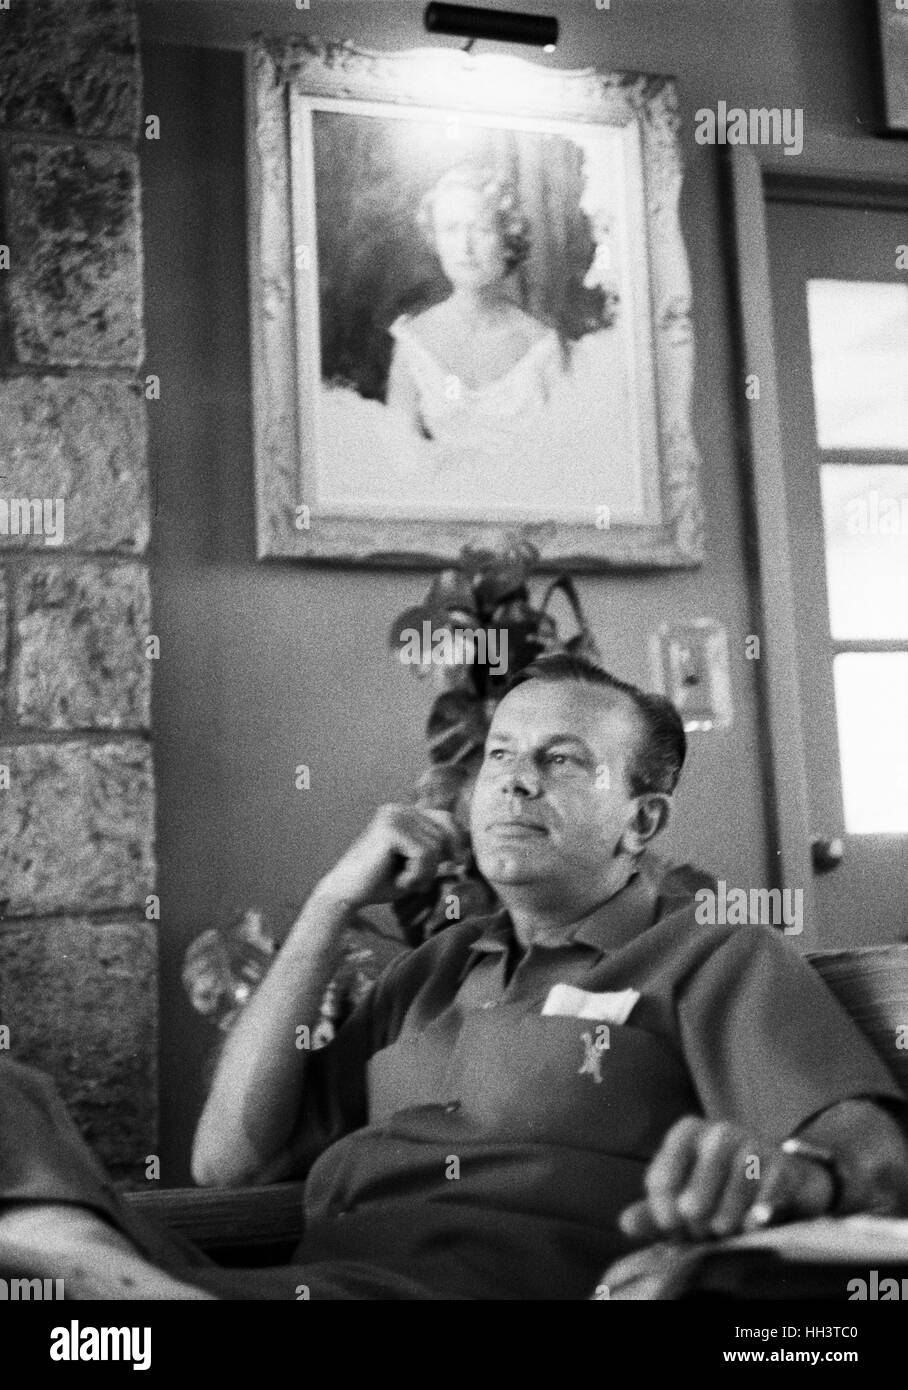 Jack Paar, photographed at his home in July 1962. - Stock Image